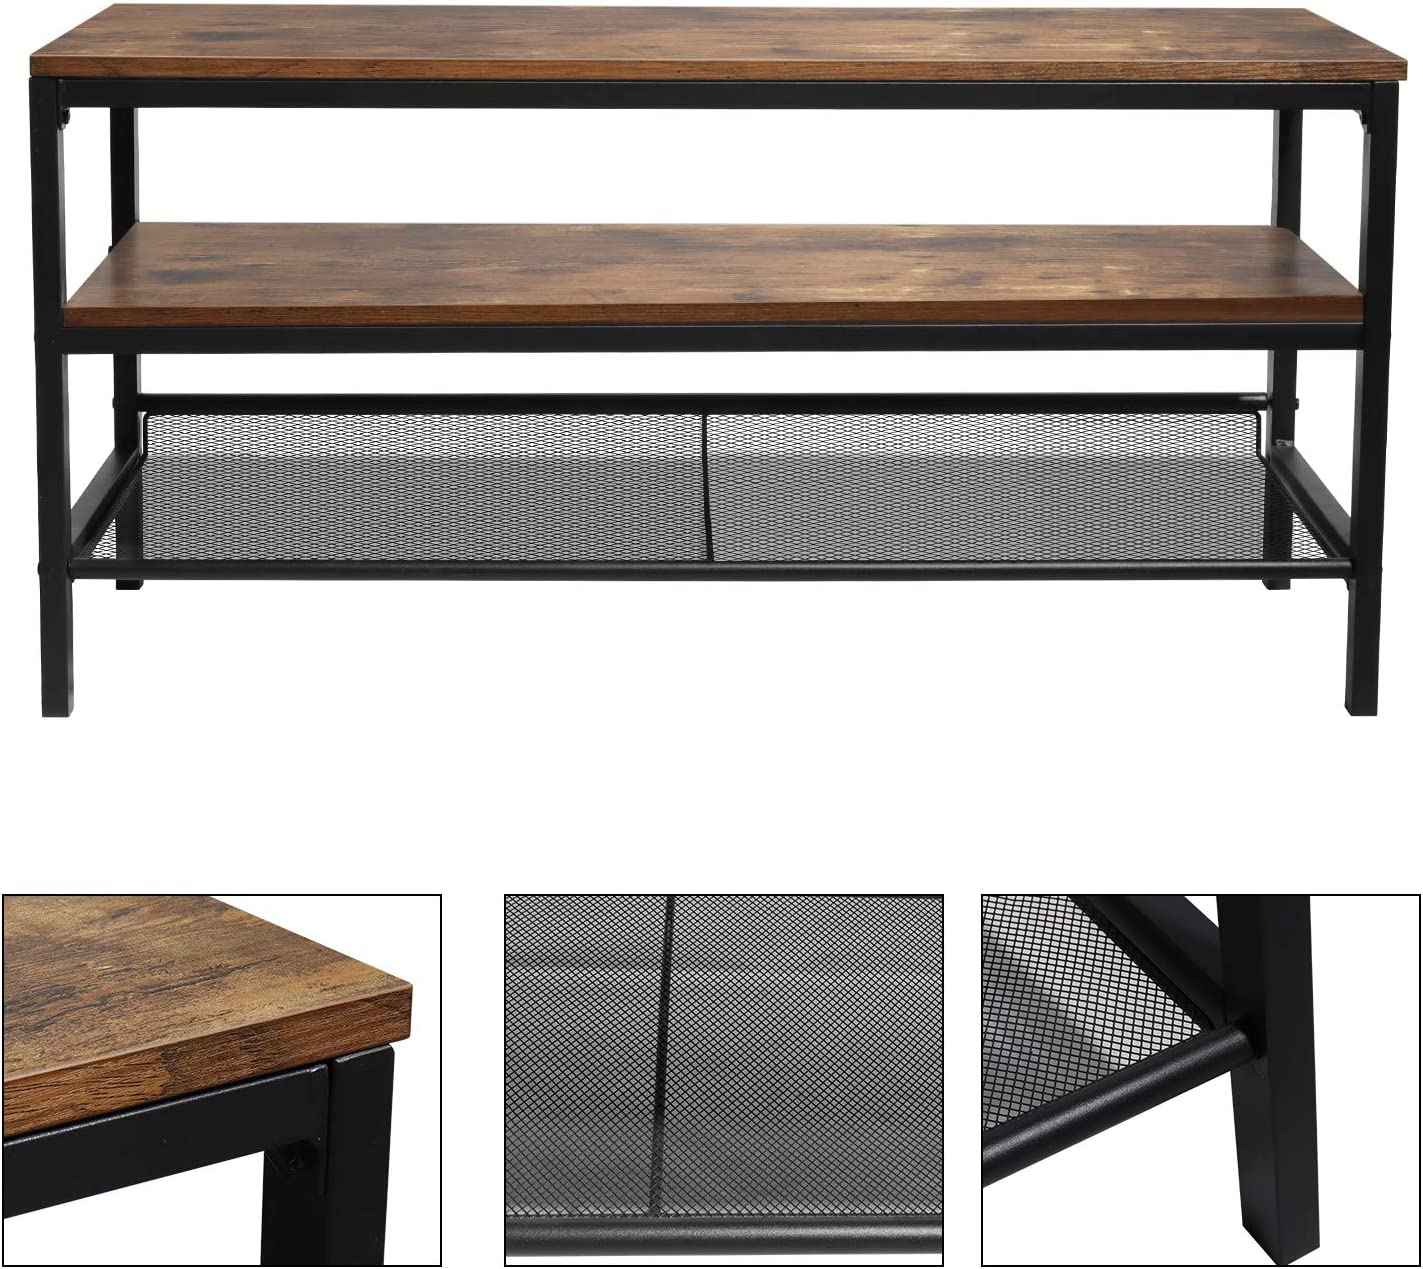 Industrial for Living Room,Three-Tier Rustic Brown Wood-Like Grain Lengthened TV Cabinet Coffee Table with Metal Frame HOMBYS Wooden TV Cabinet Console